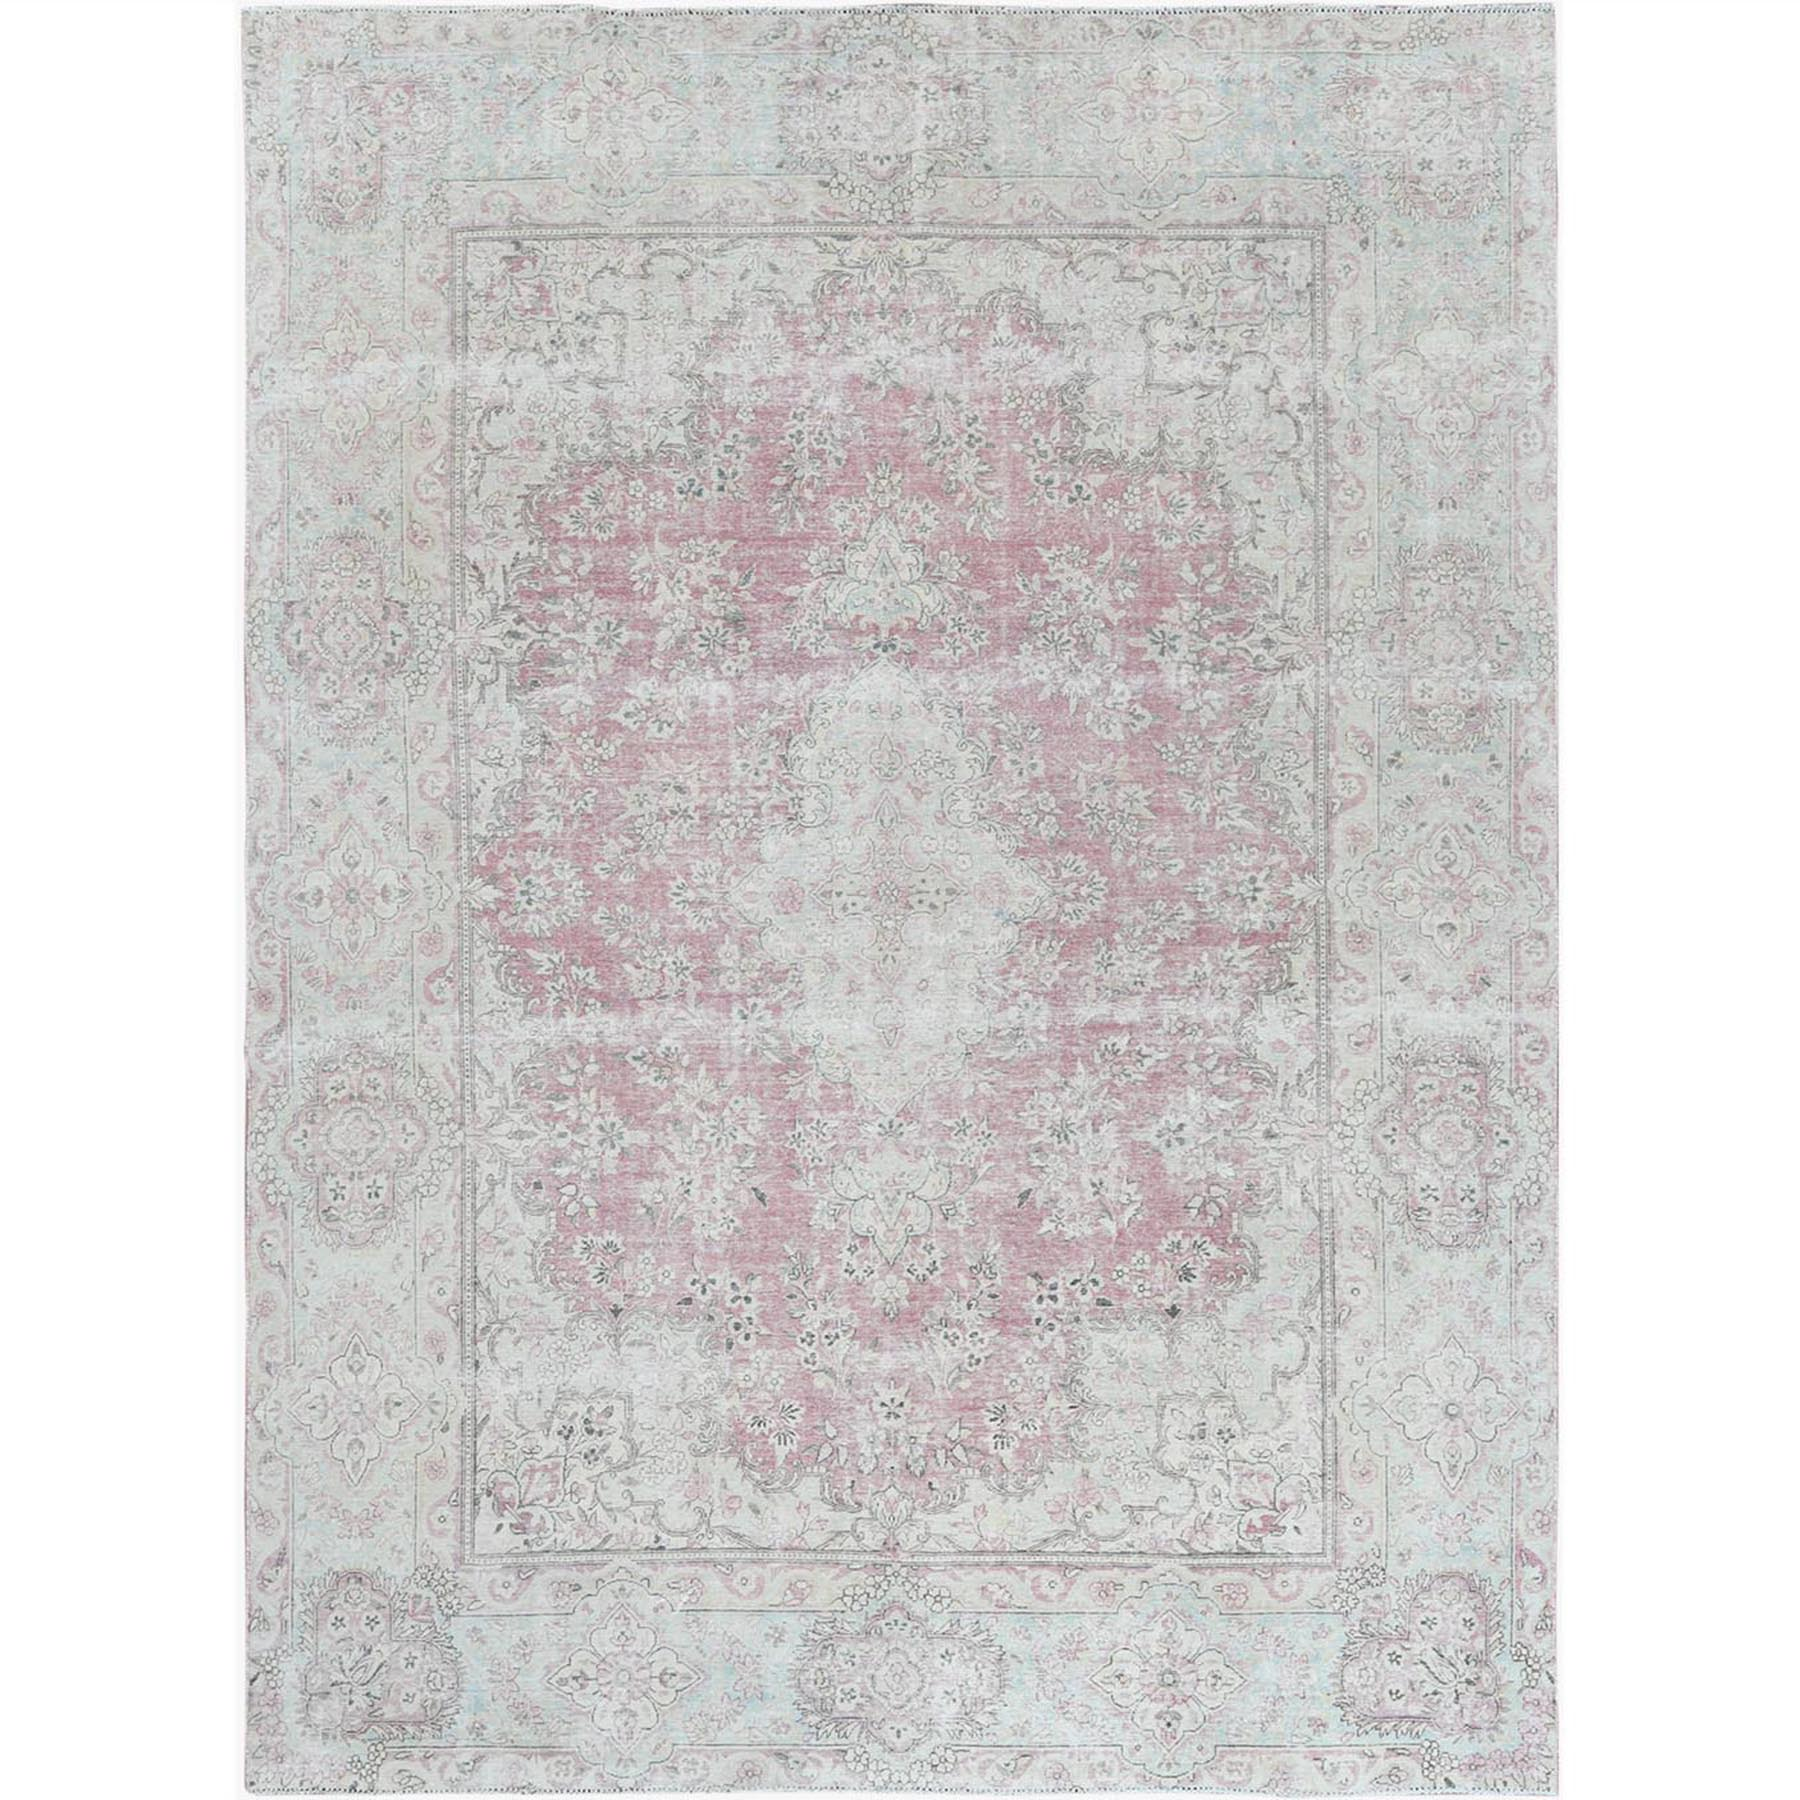 Fetneh Collection And Vintage Overdyed Collection Hand Knotted Pink Rug No: 1122646